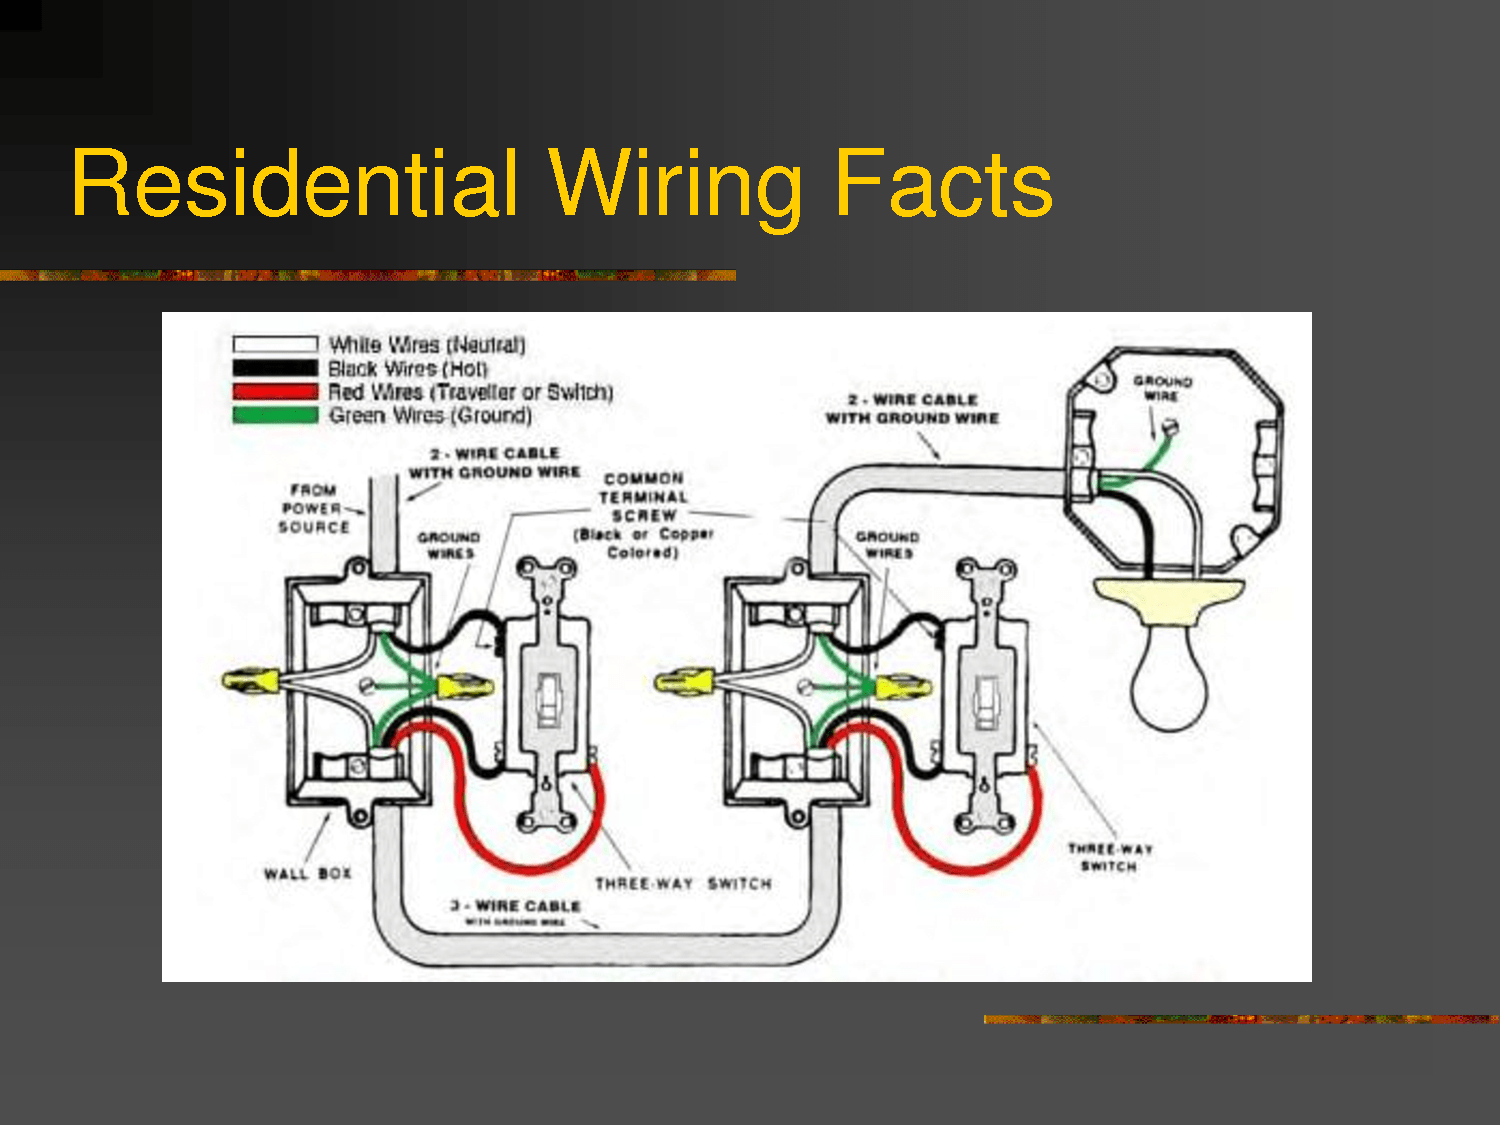 And Ventilation Diagram Free Download Wiring Diagram Schematic